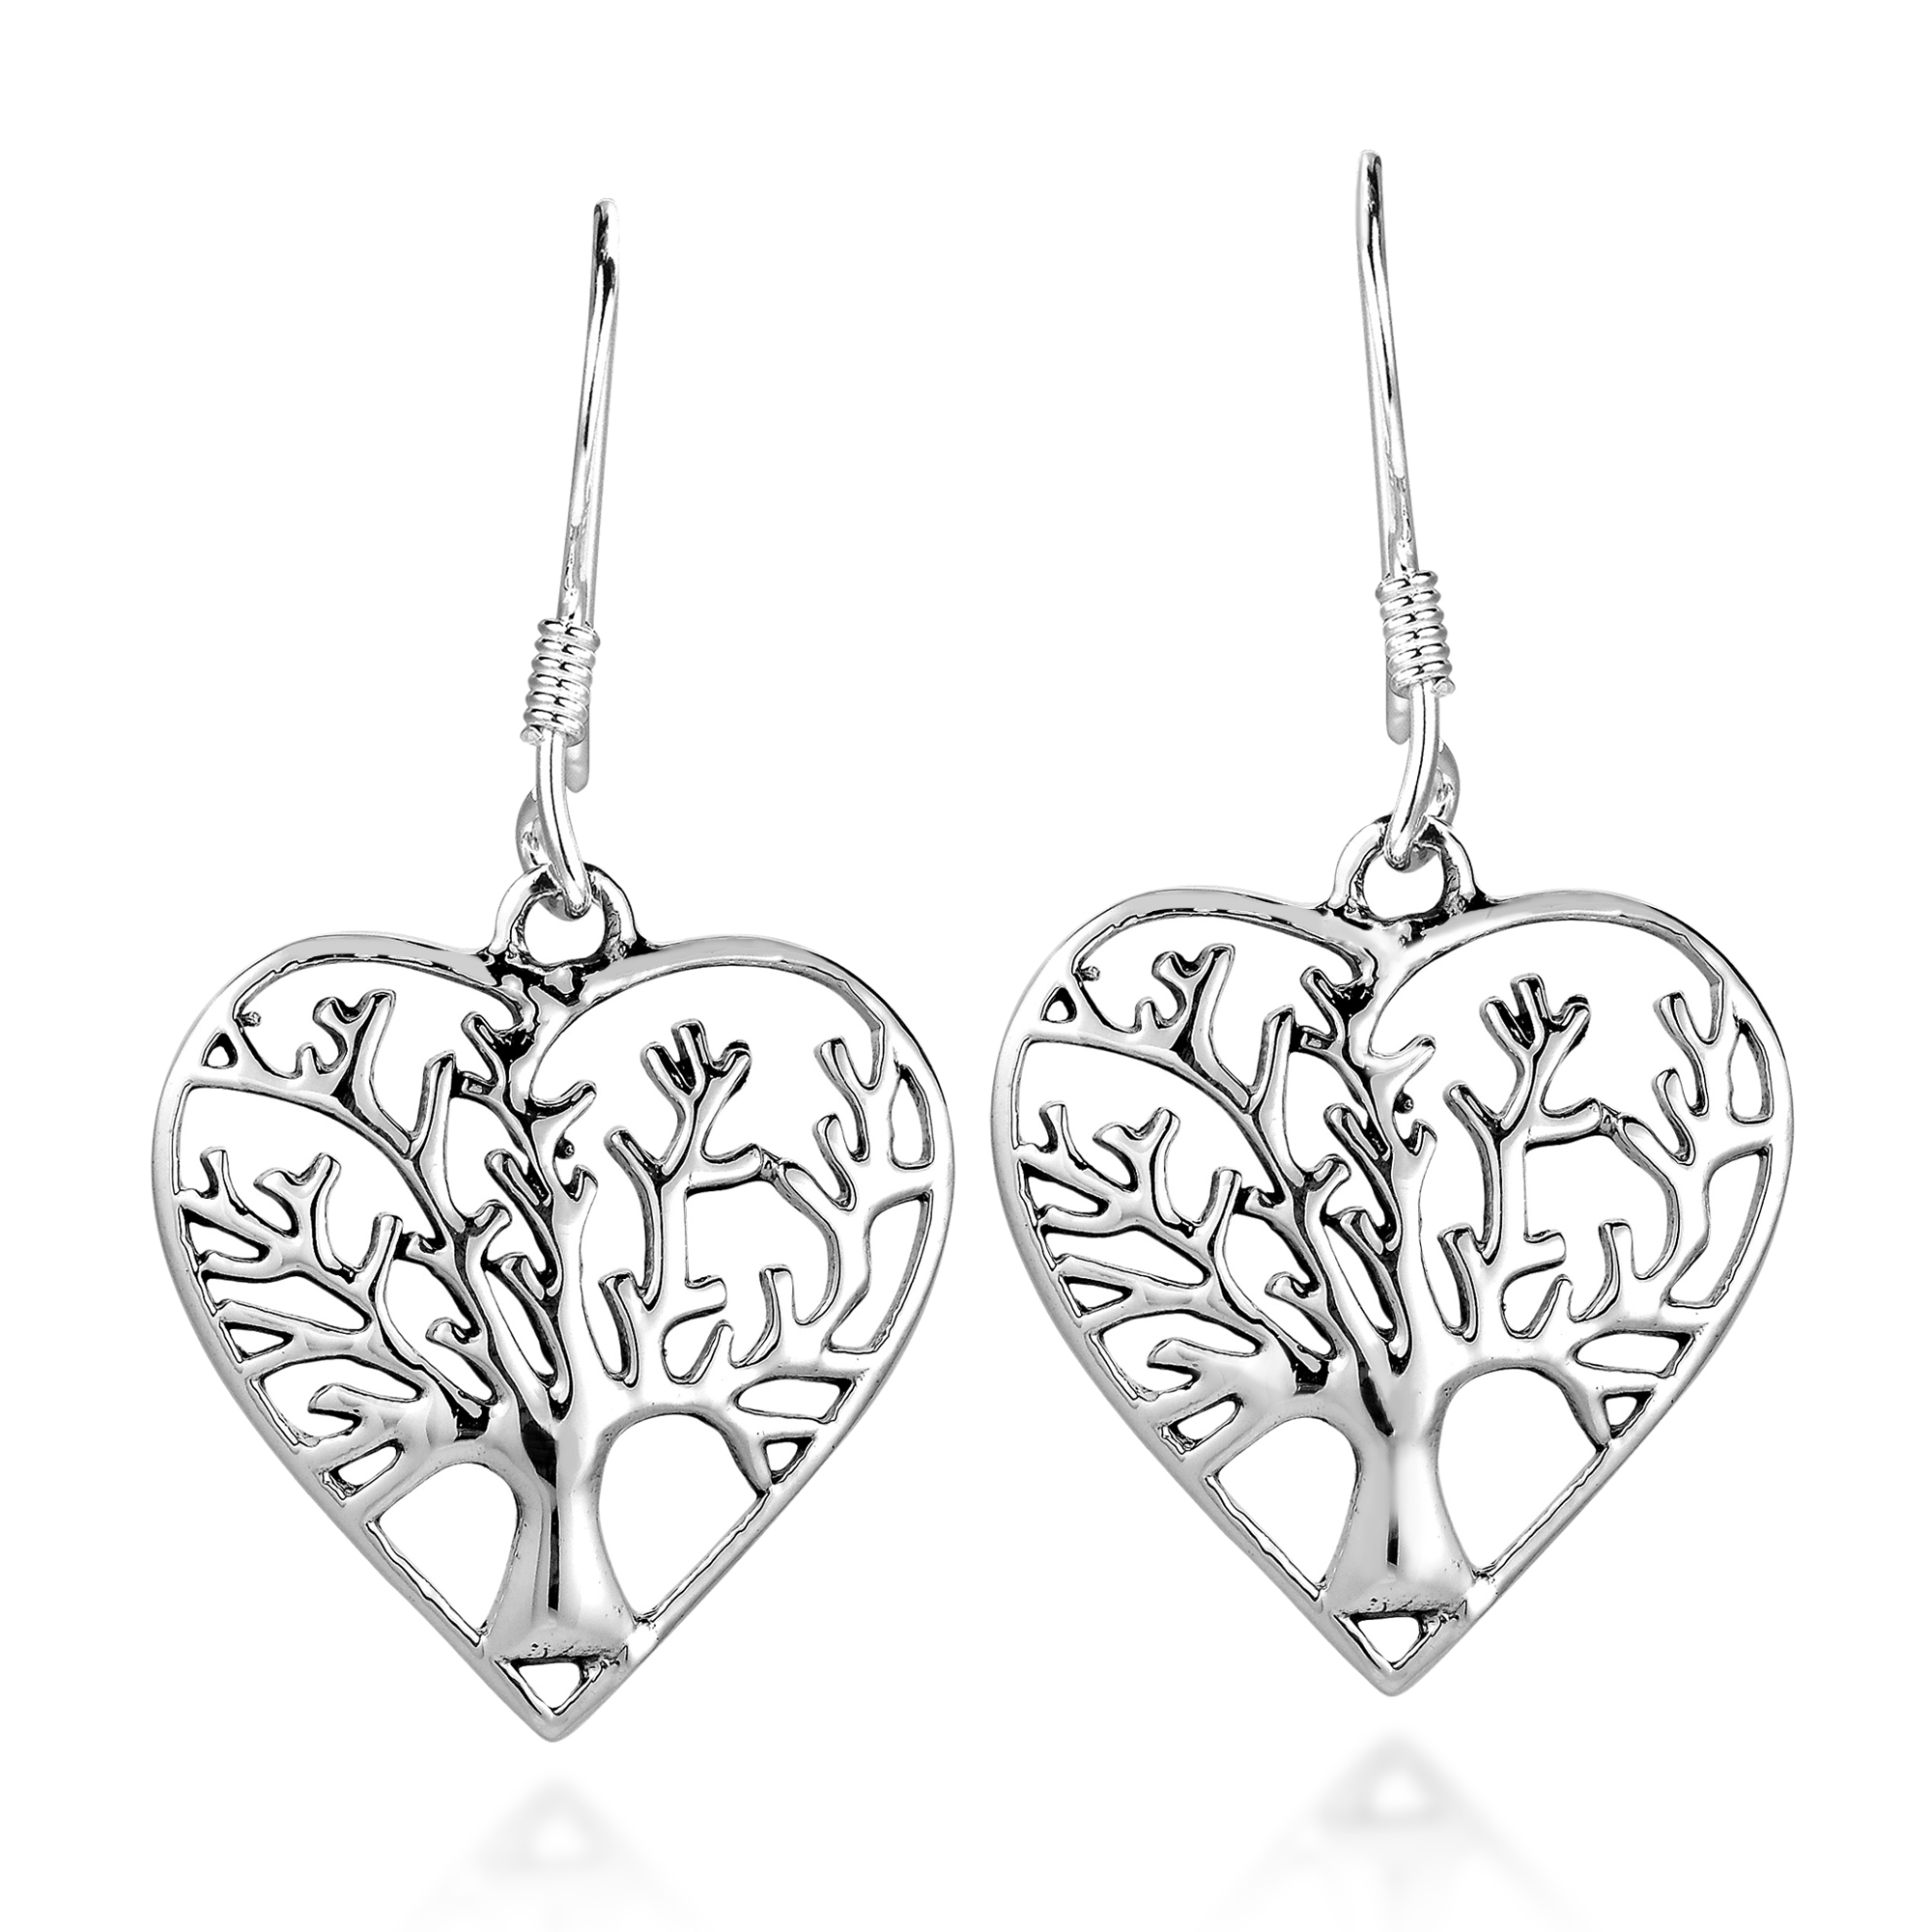 drop silver earrings heart jaz swarovski sterling crystal j asp p shape